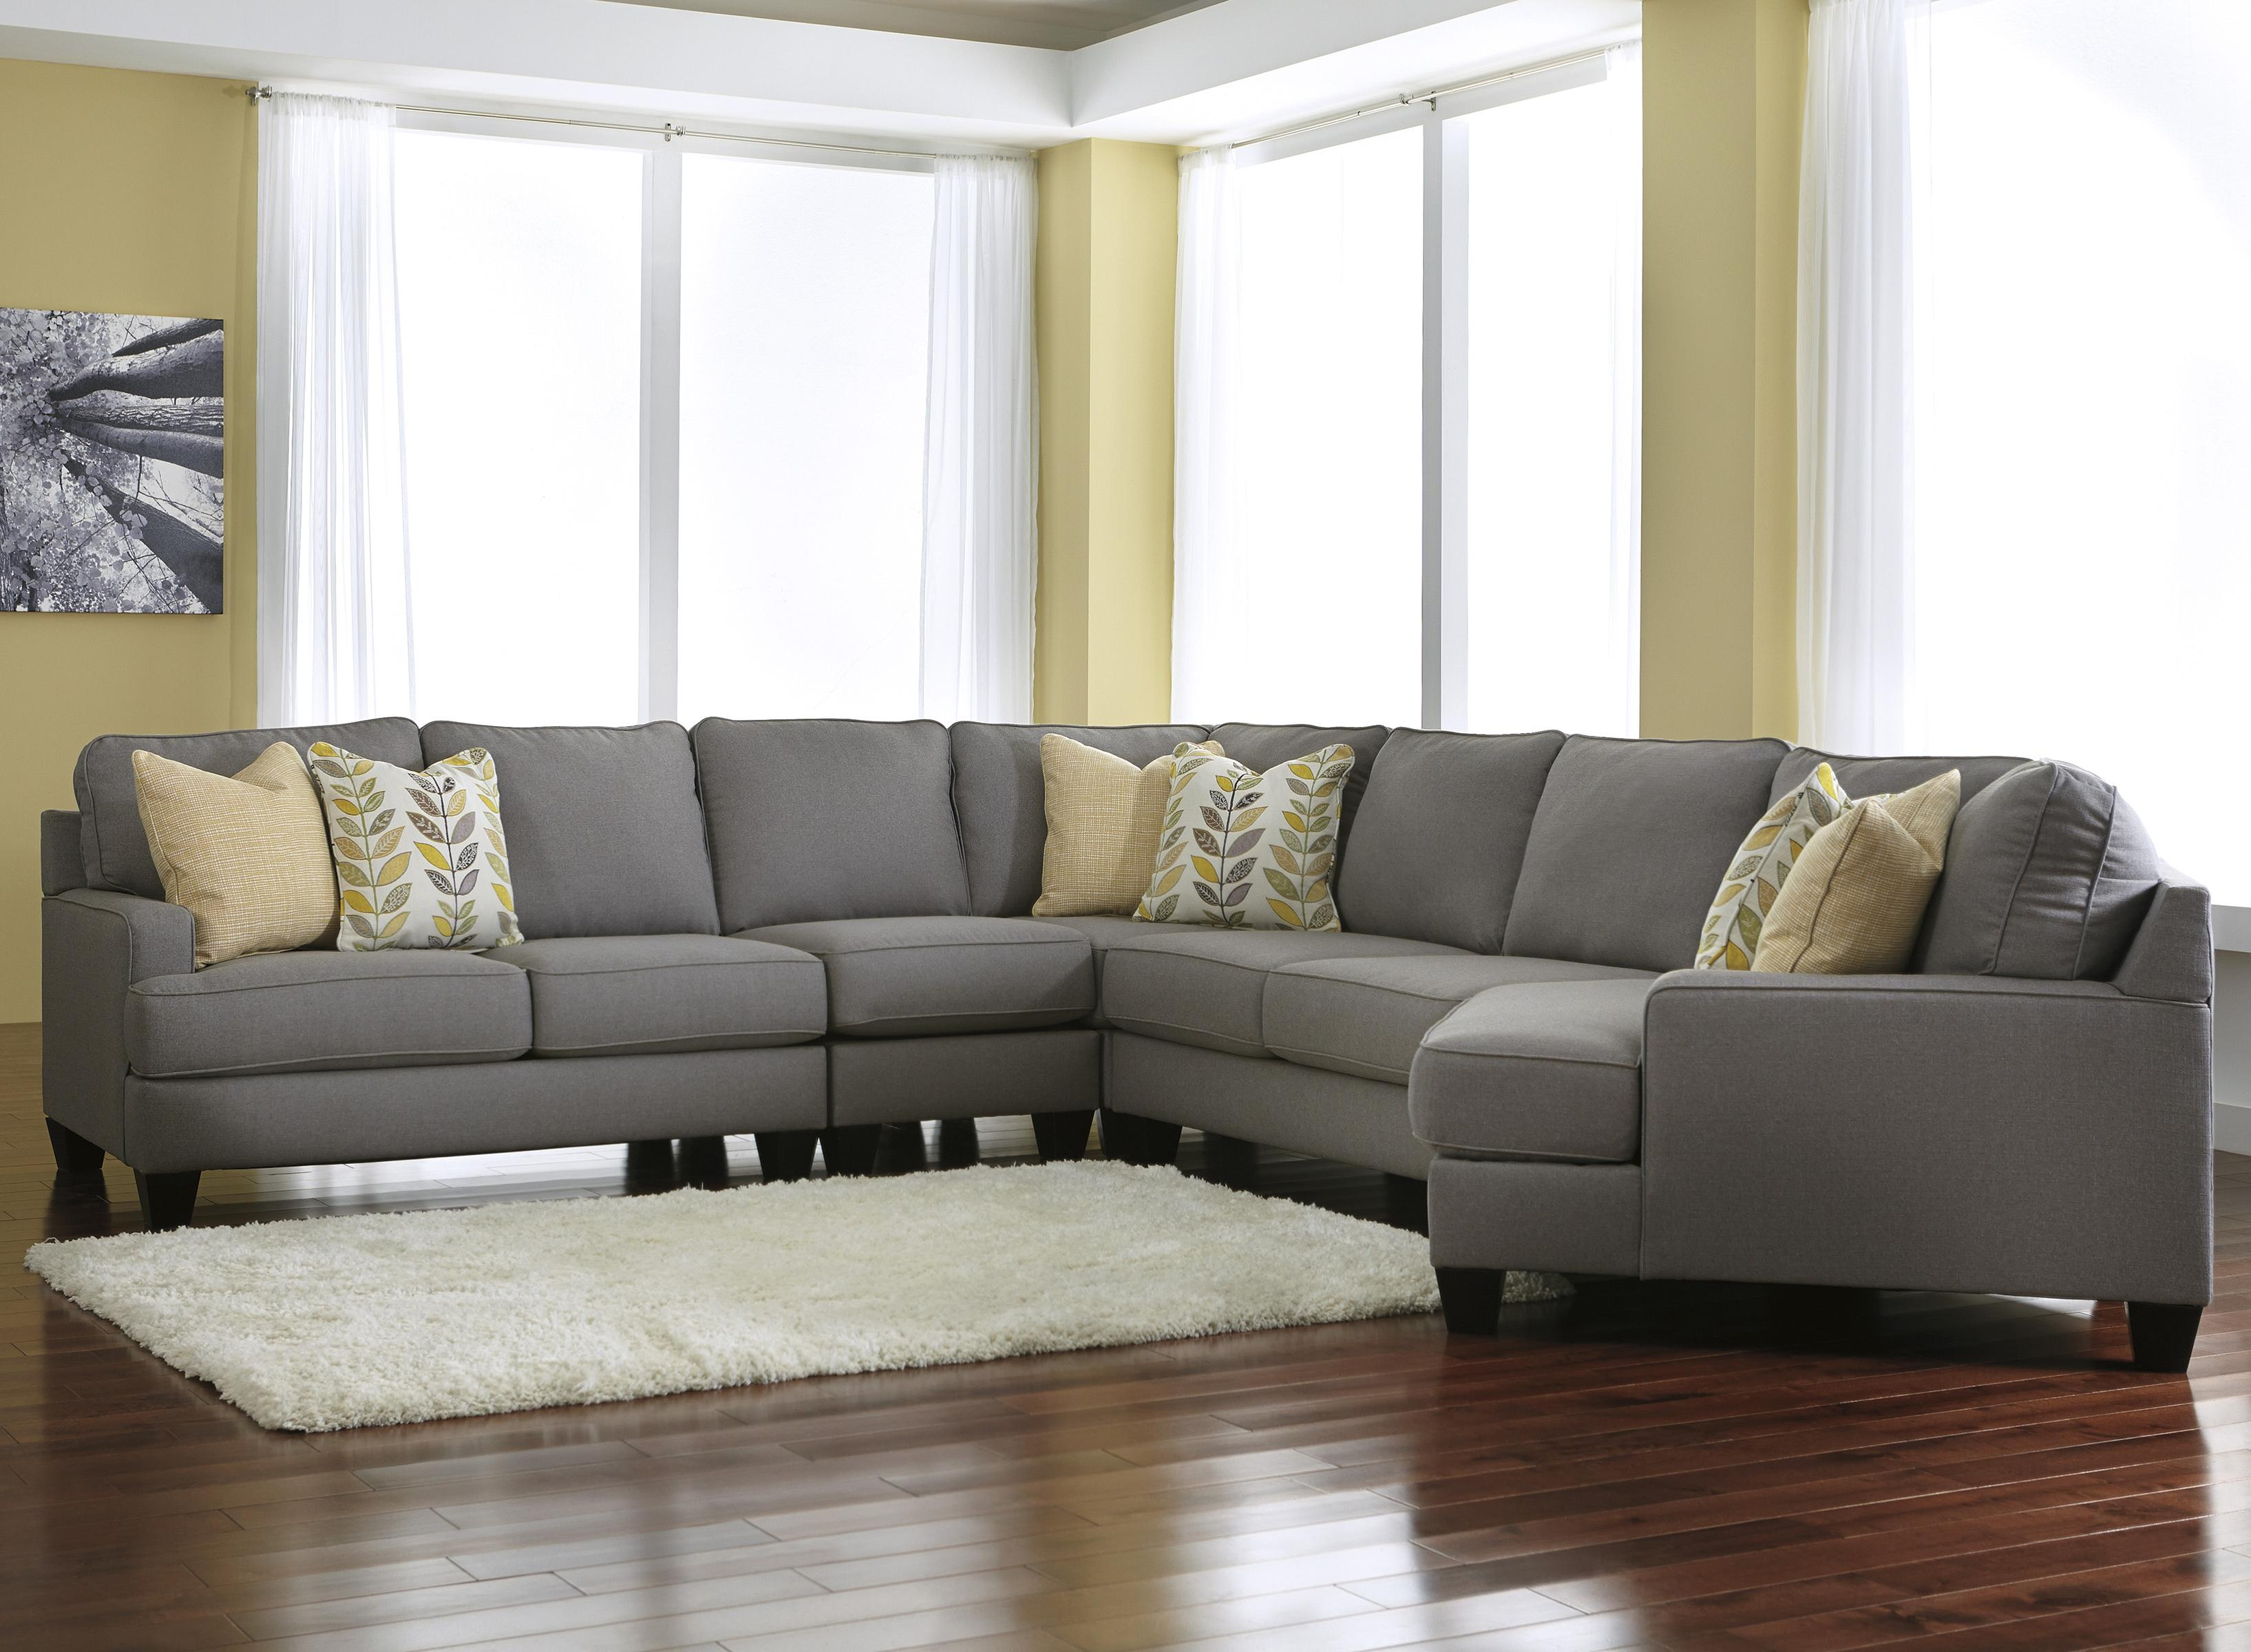 Charmant 5 Piece Sectional Sofa With Right Cuddler